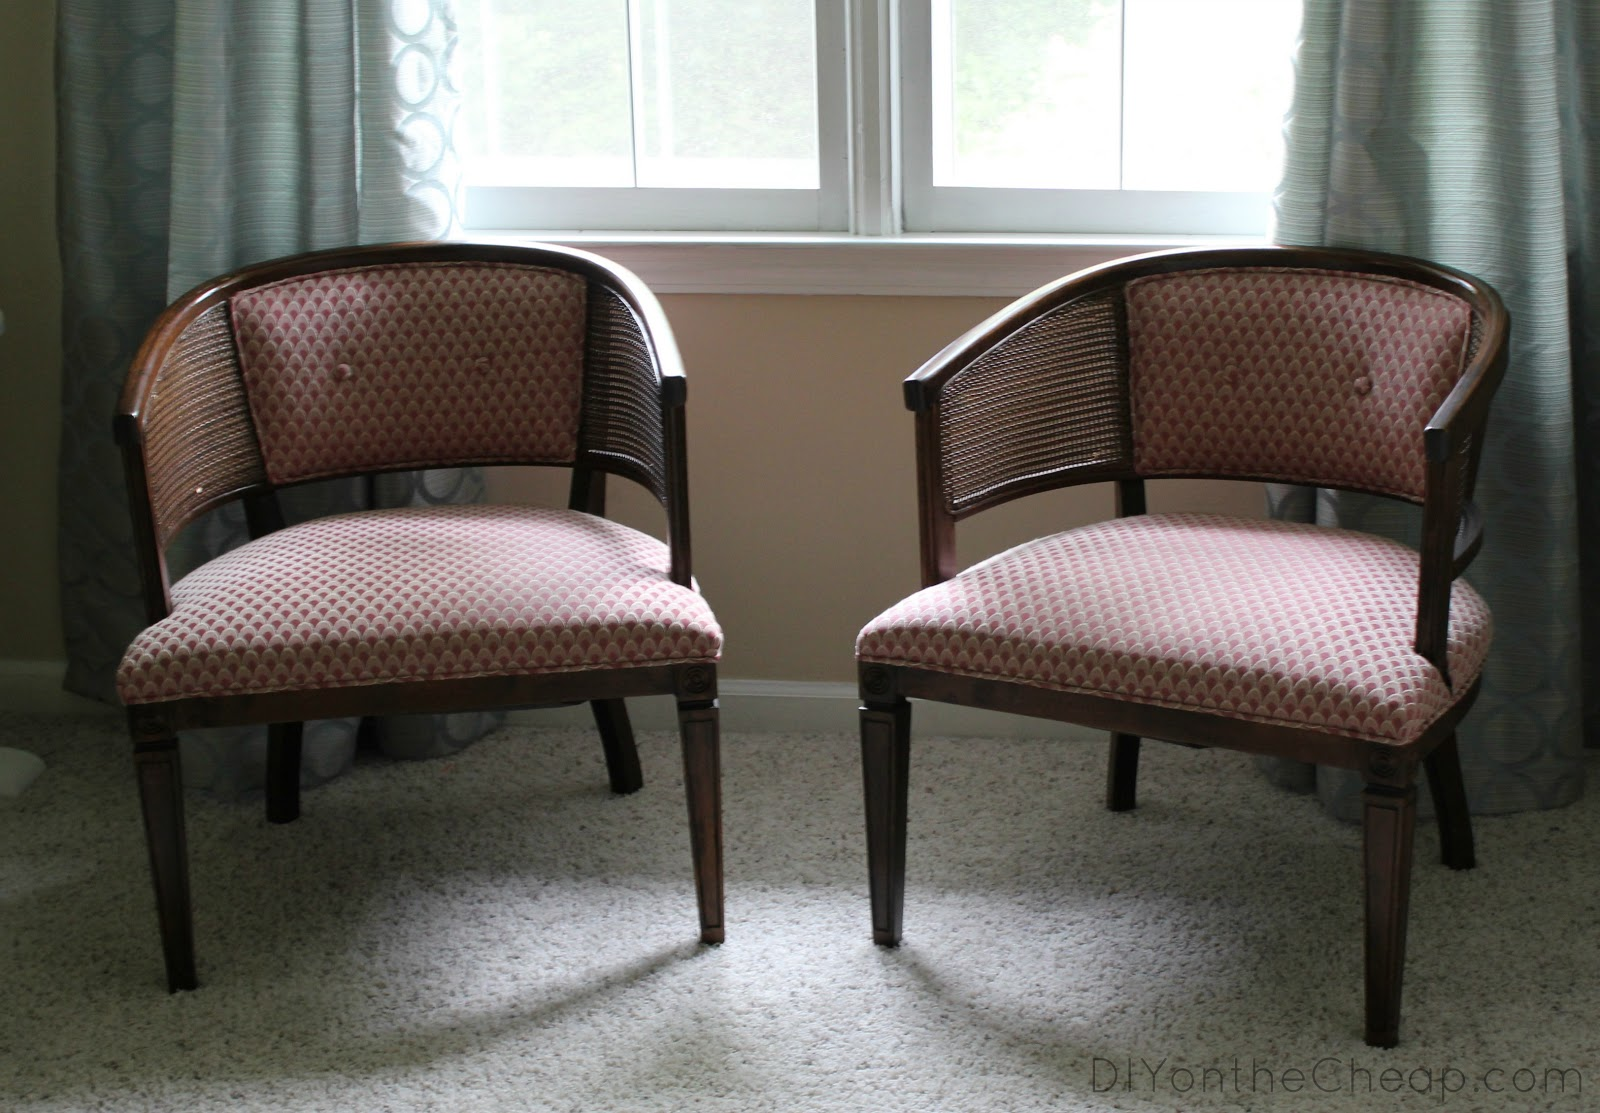 Where To Get Chairs Reupholstered Chair Design Buy Before And After Erin Spain